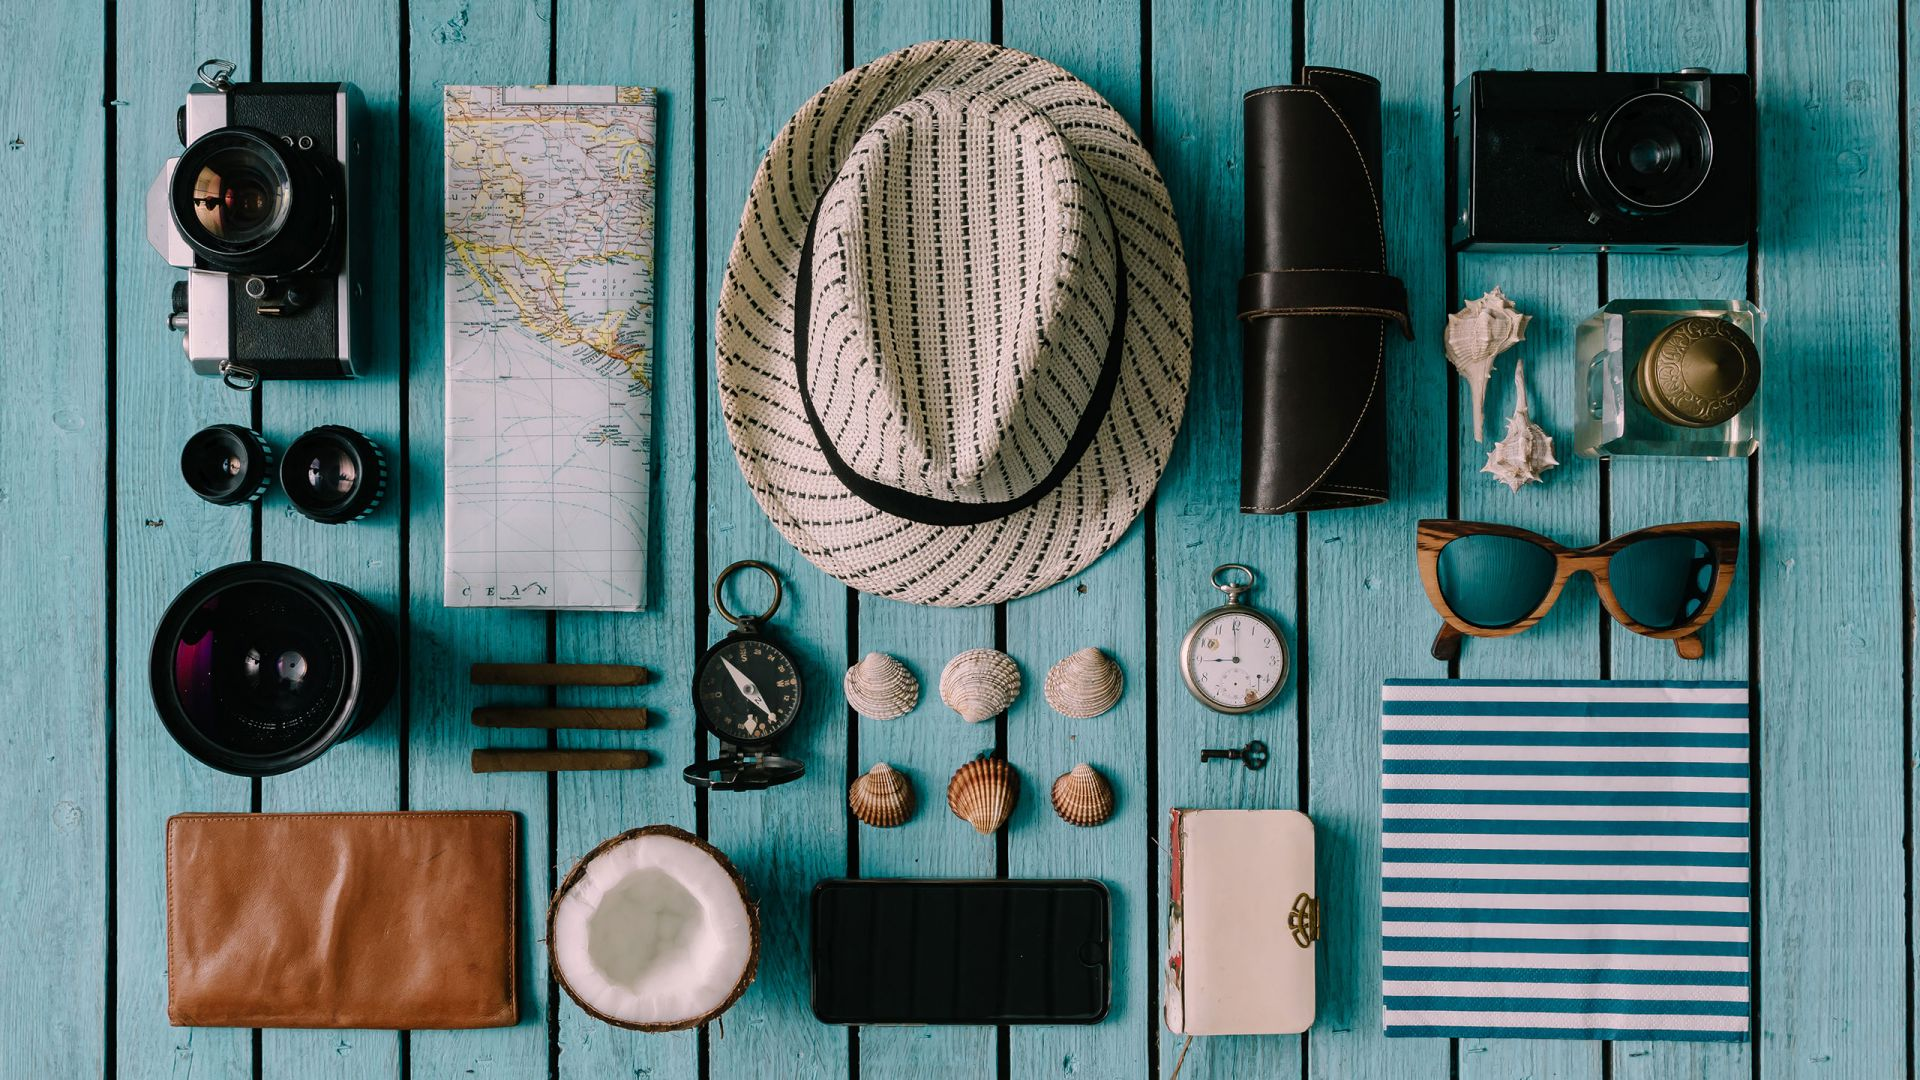 Summer object items